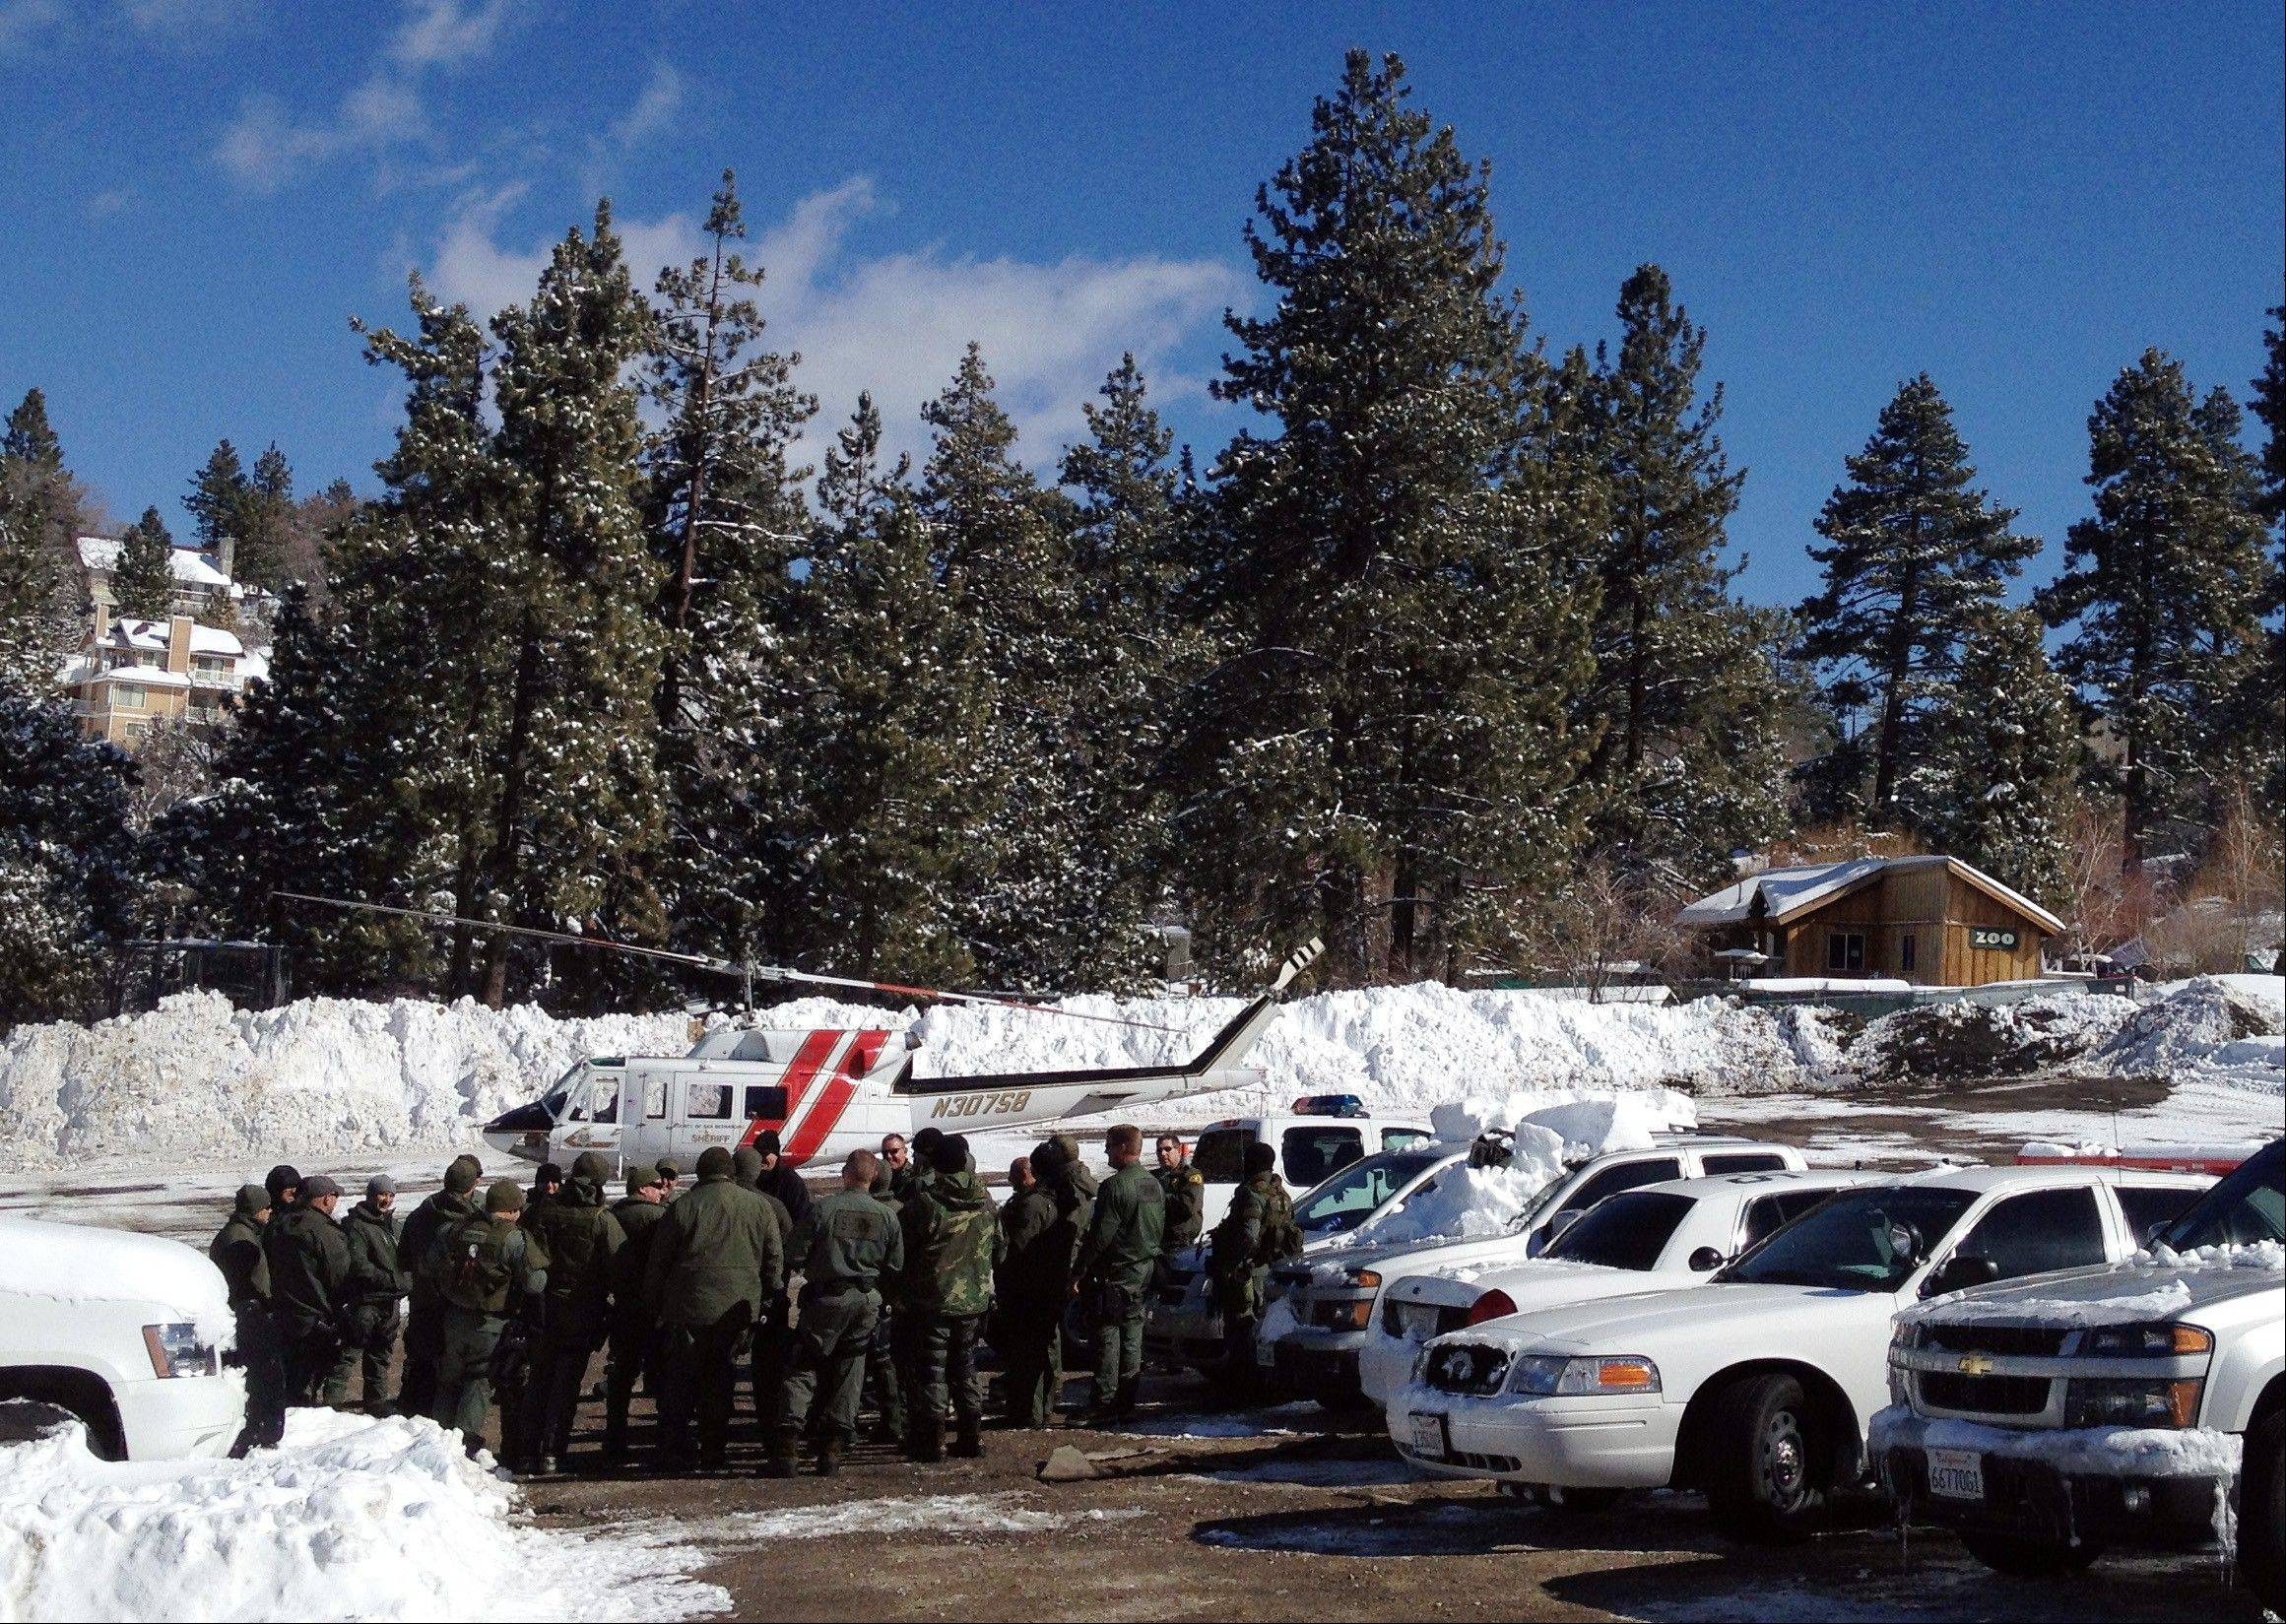 Law enforcement officials gather to discuss plans to resume the search for fugitive Christopher Dorner, Saturday near Big Bear, Calif. More than 100 law enforcement officers, some in armored personnel carriers, hunted Saturday for the former Los Angeles police officer suspected of going on a deadly rampage this week to get back at those he blamed for ending his police career.